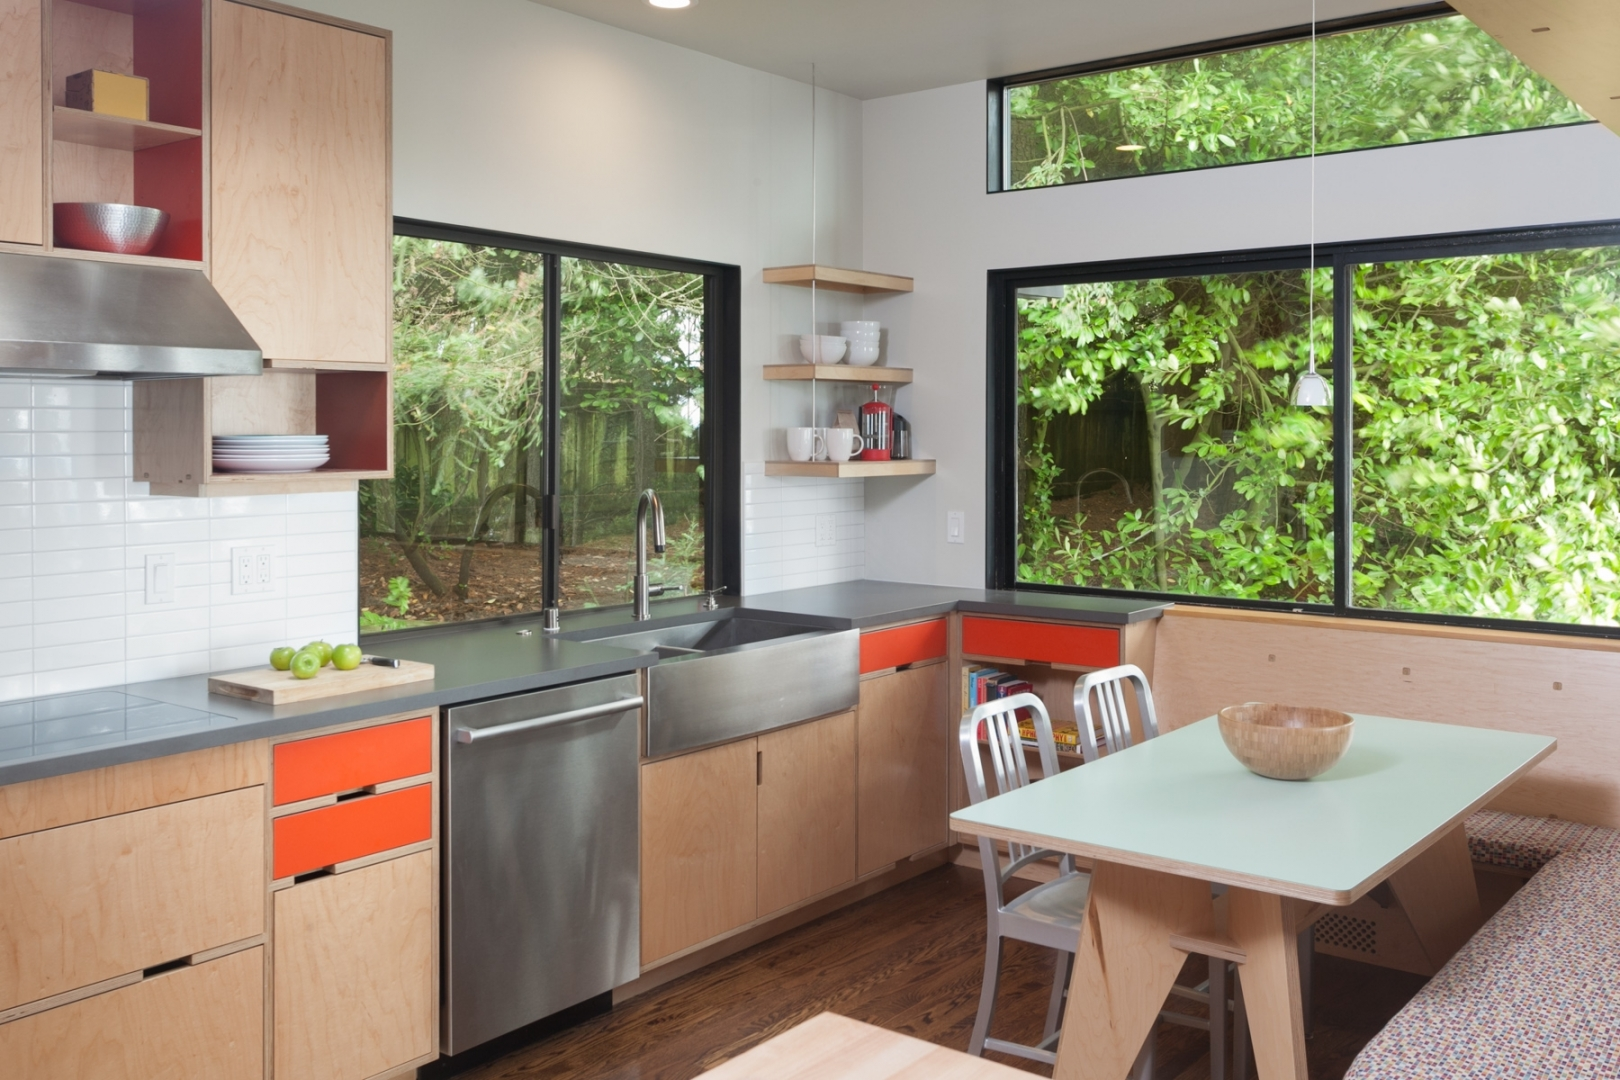 5 Green Upgrades That Add Value to Your Home